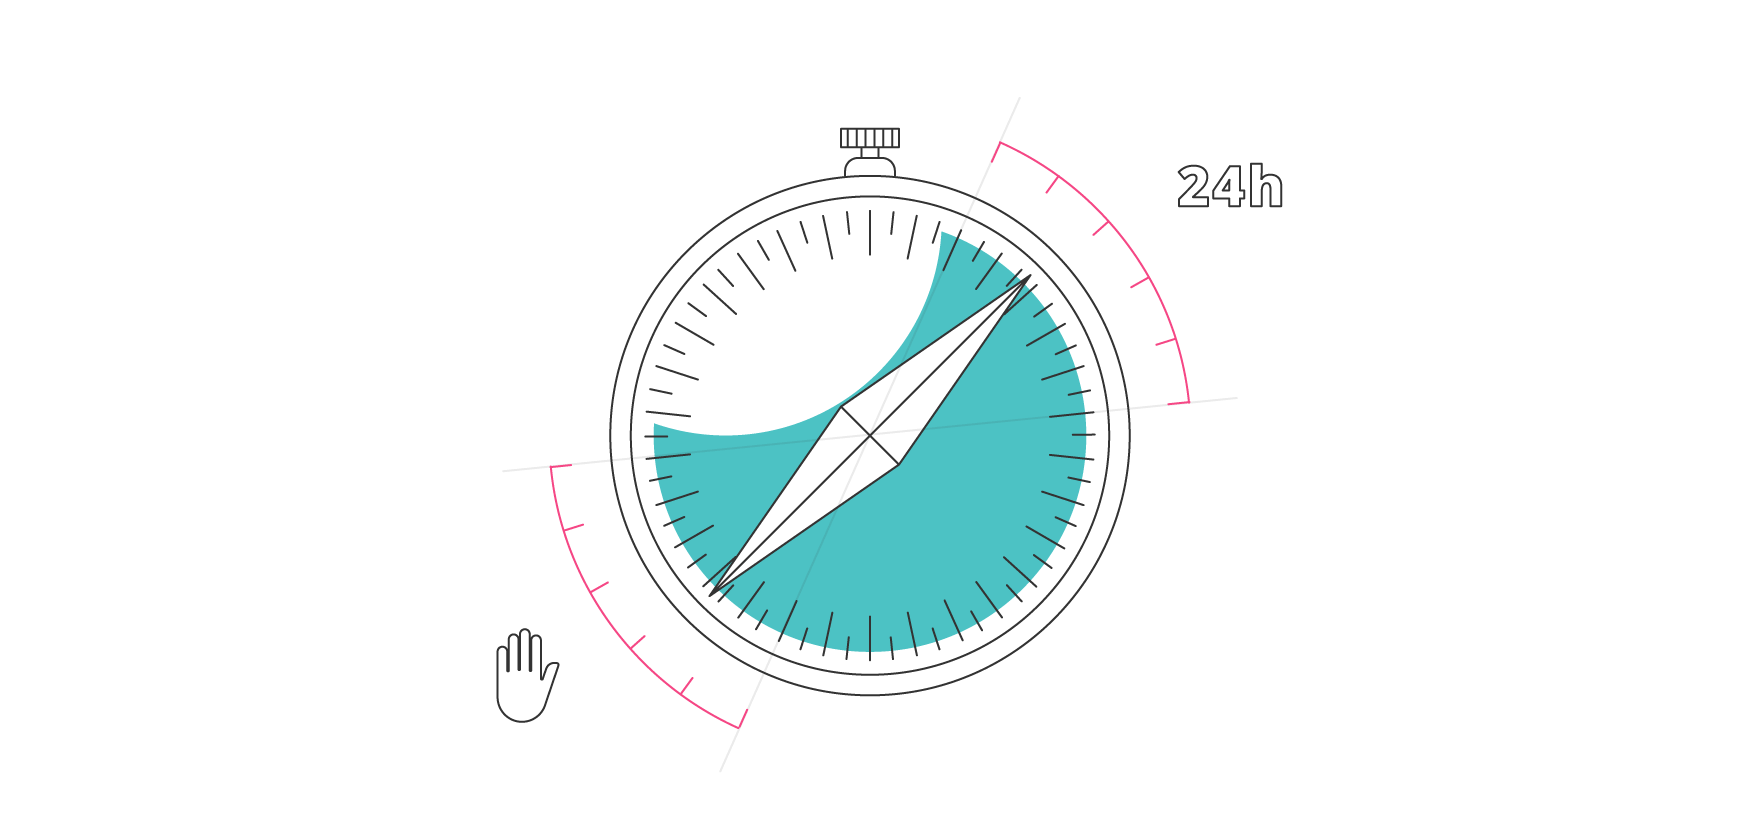 Safari adblocking